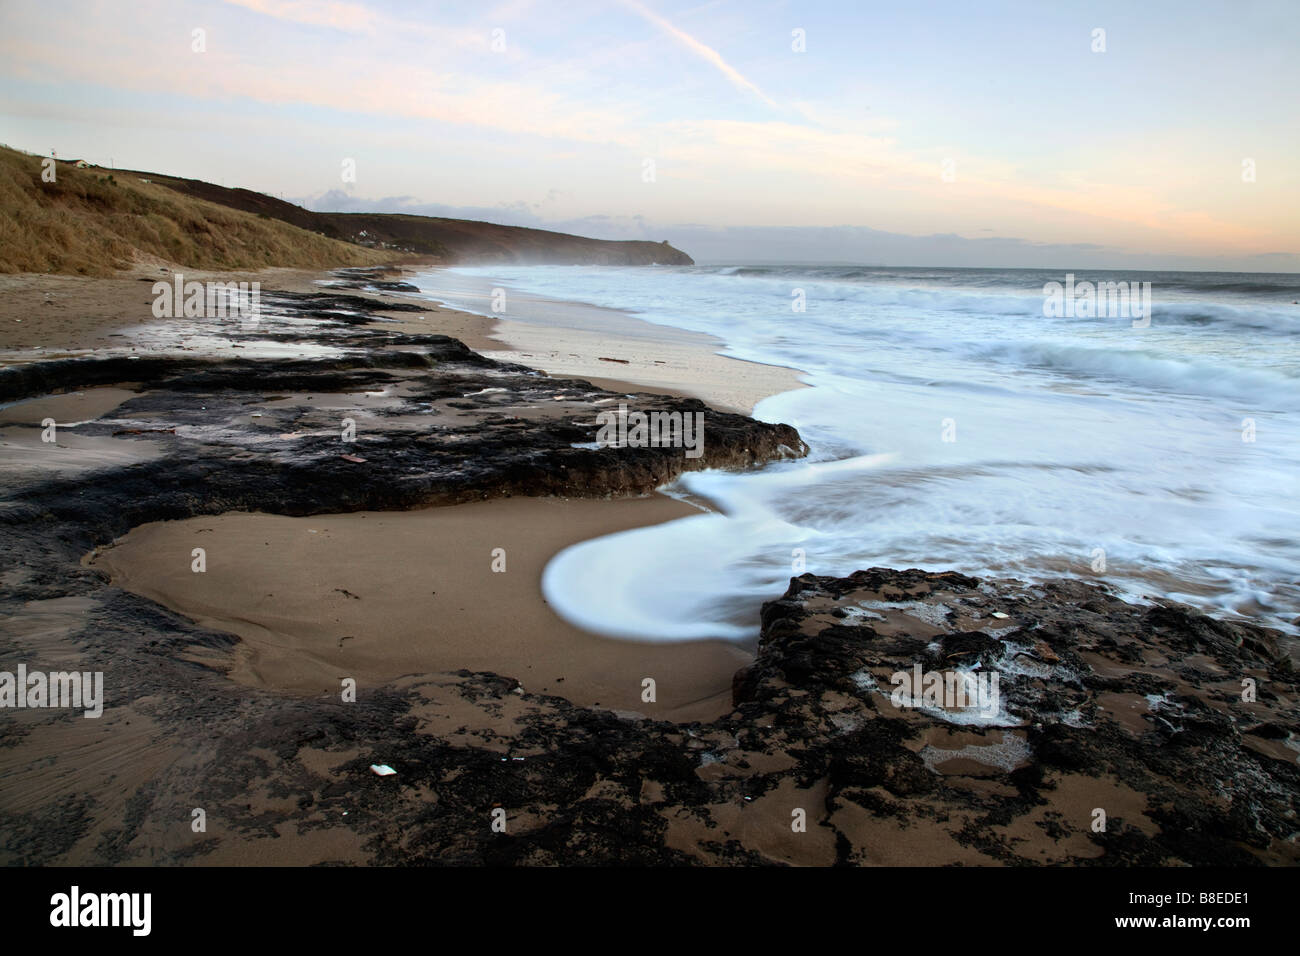 fossil forest at praa sands beach cornwall - Stock Image